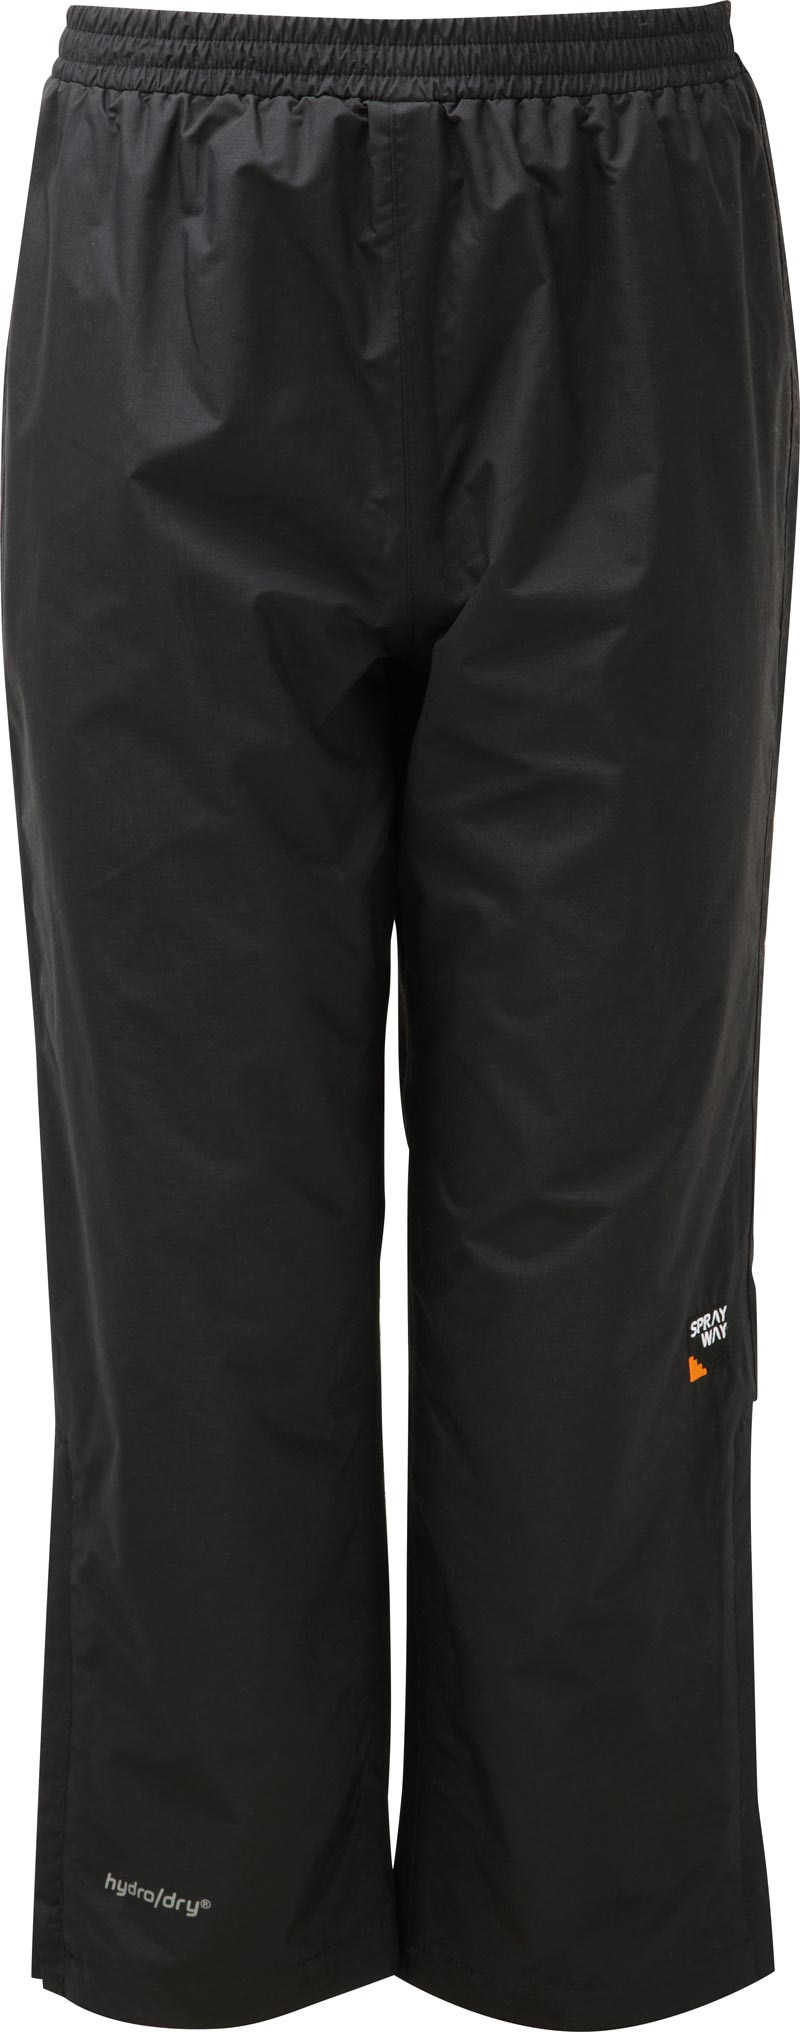 Sprayway Junior Waterproof Rainpant Seam Sealed Taffeta Lining Elasticated waist